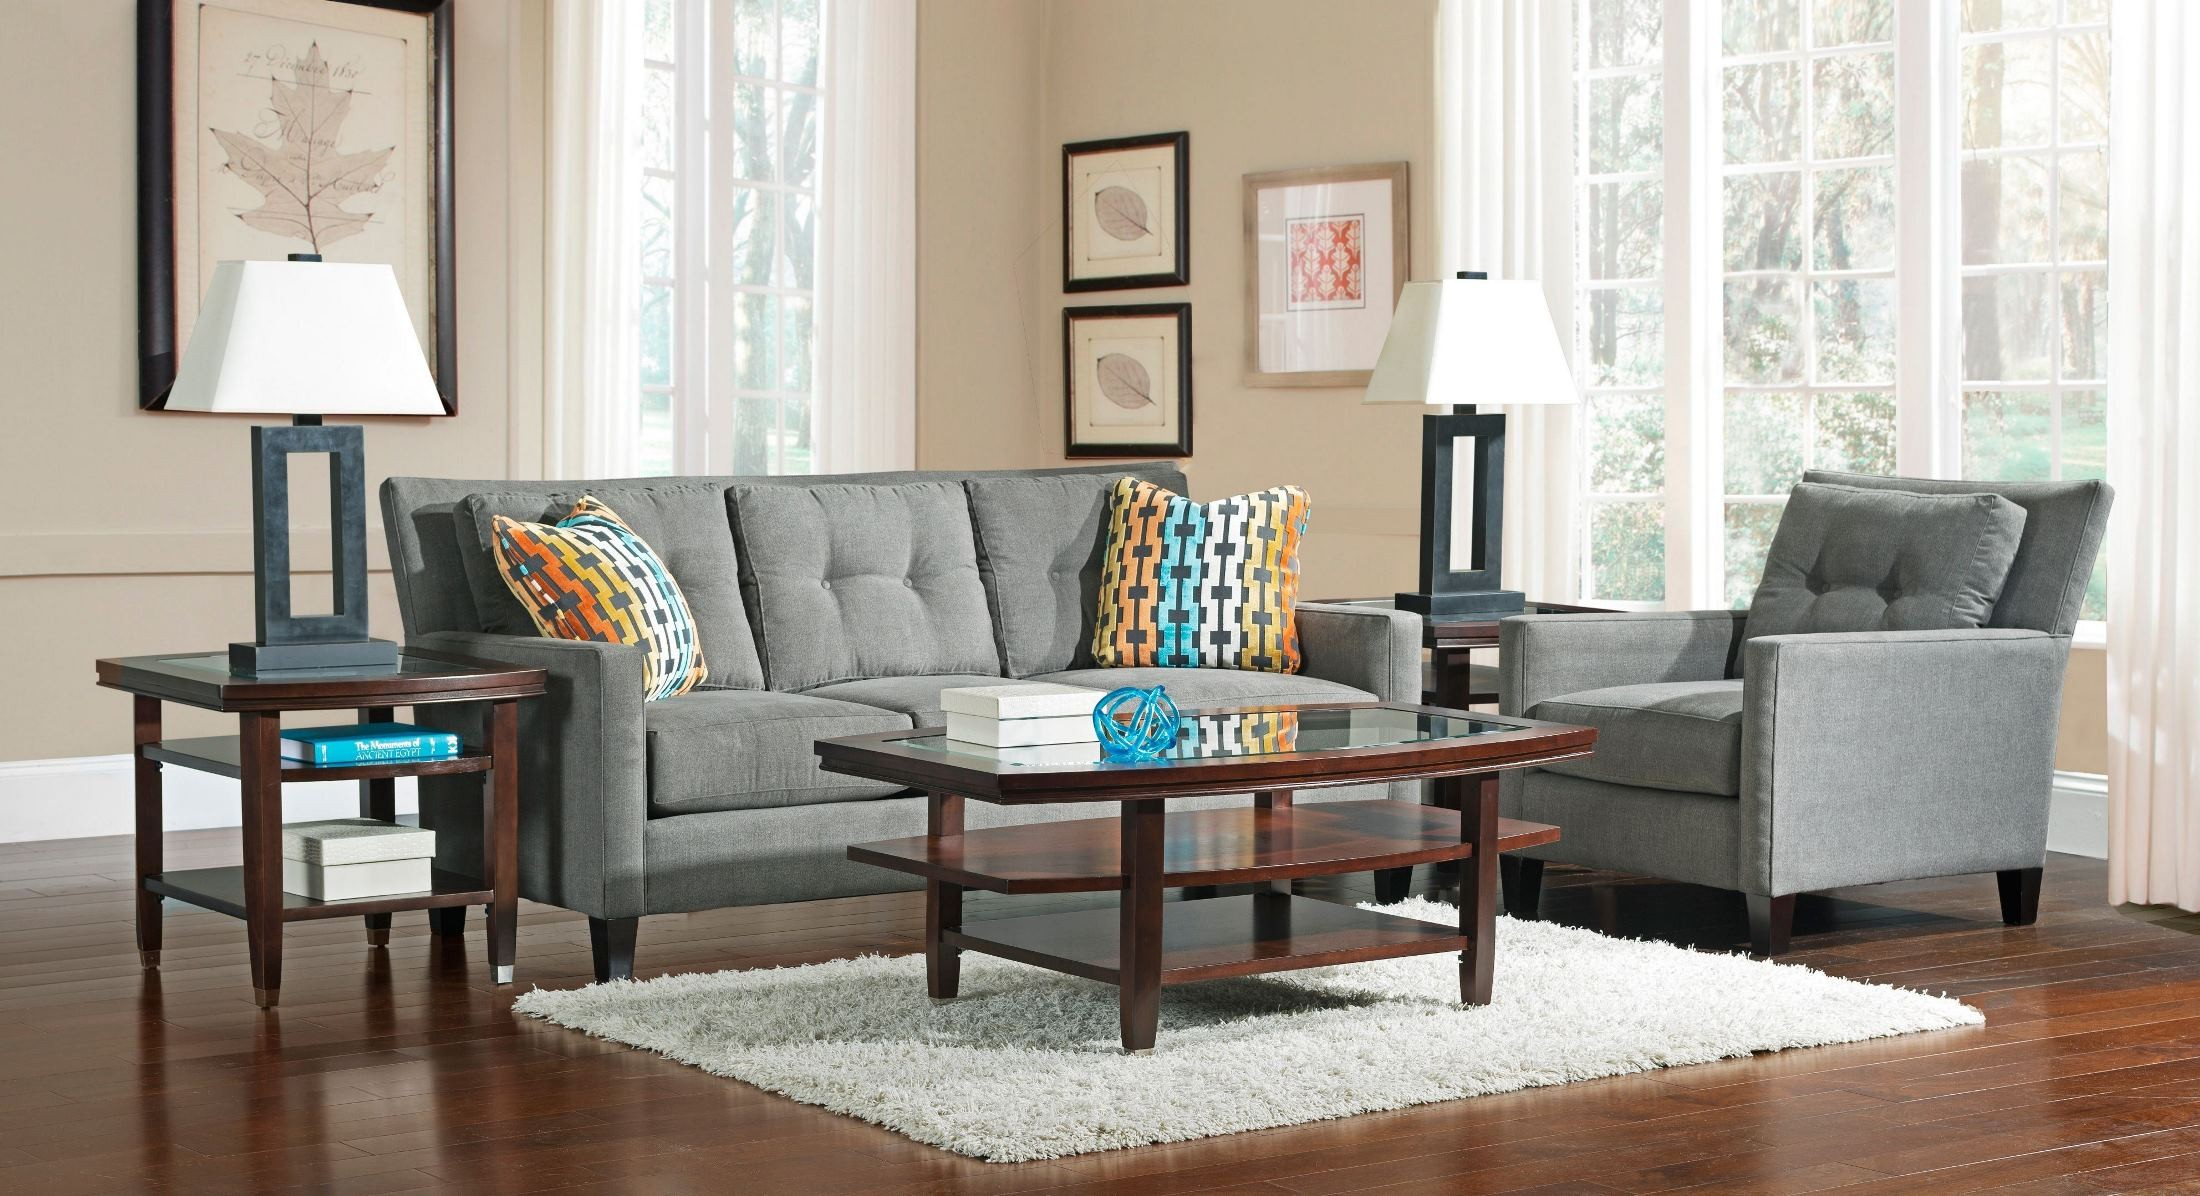 jevin affinity microfiber living room set from broyhill